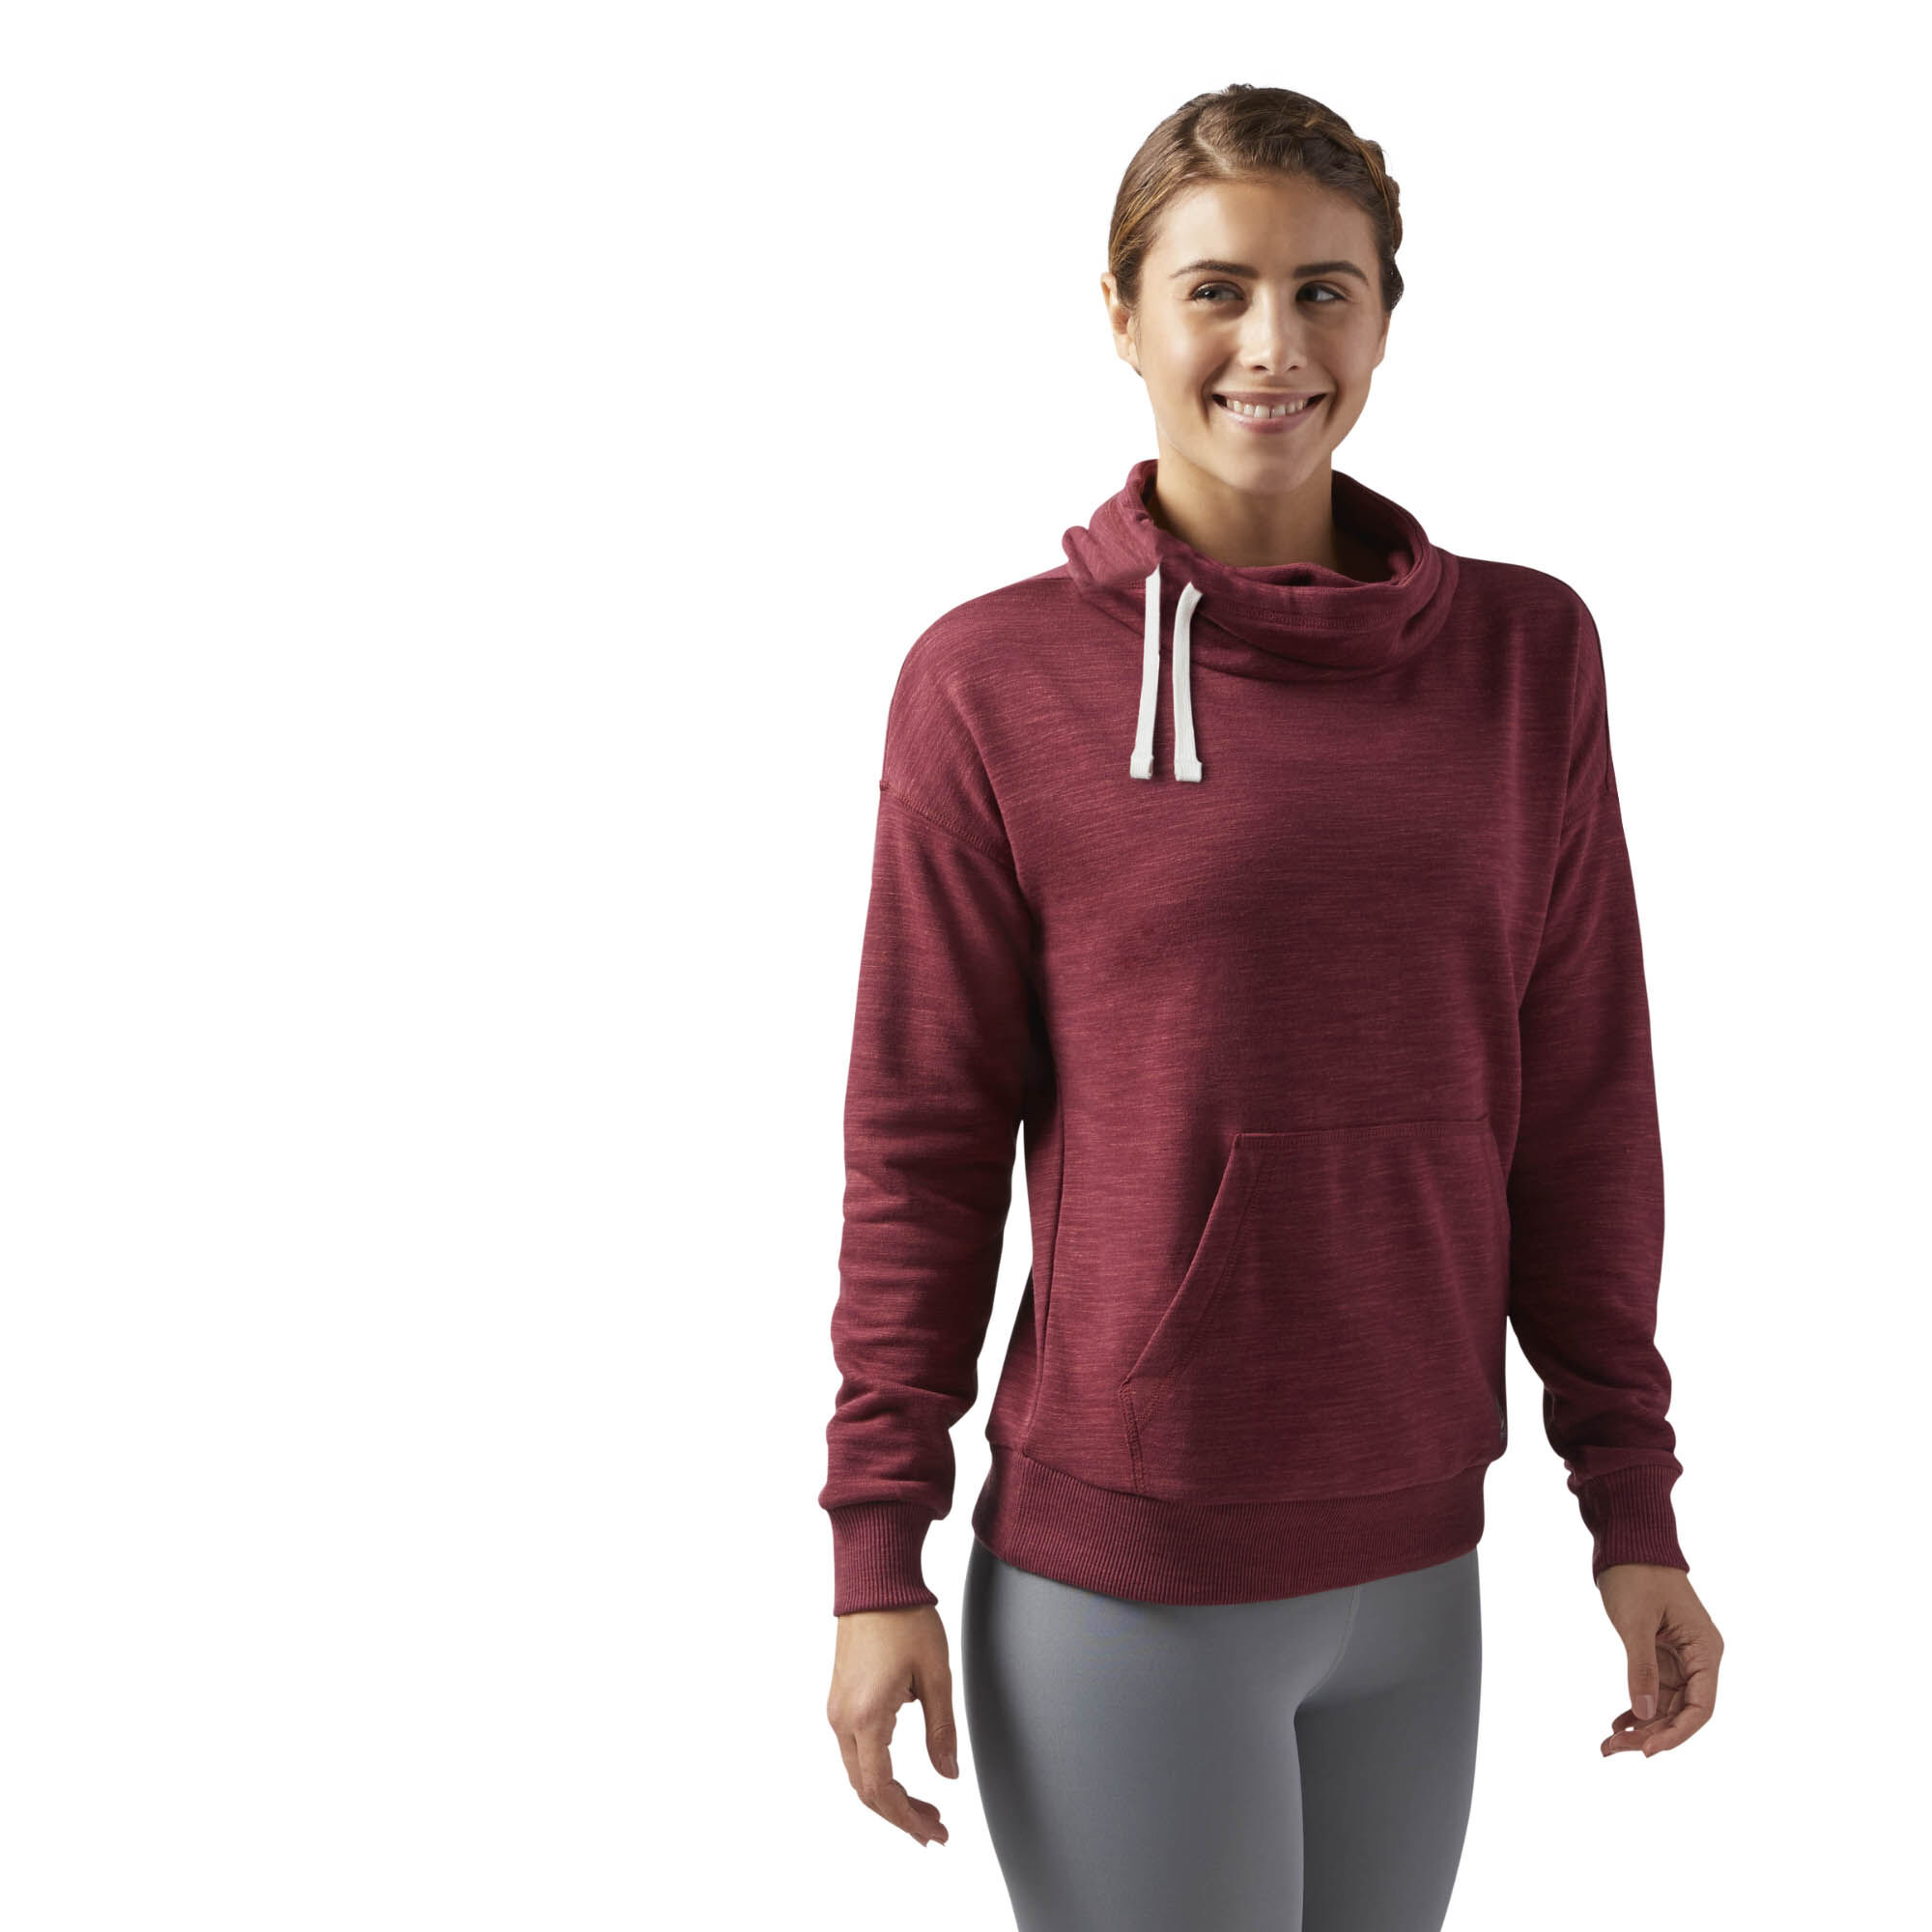 Reebok - Reebok Training Essentials Cowl Neck Sweatshirt Urban Maroon CD5897